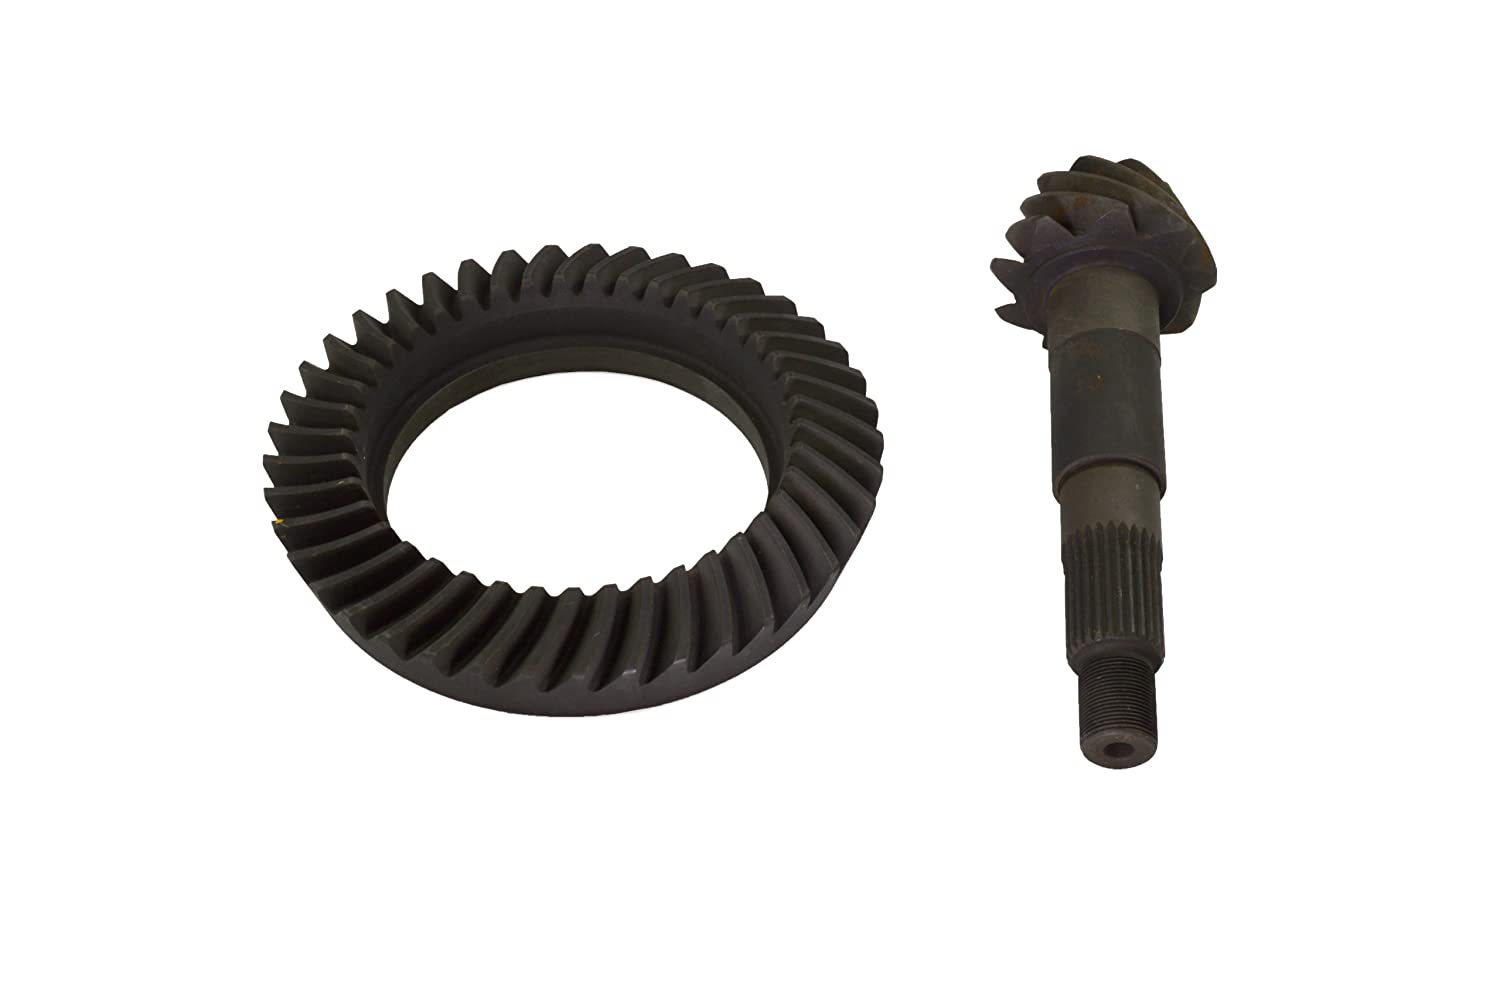 SVL 2020464 Ring and Pinion Gear Set for Dana 35 Axle